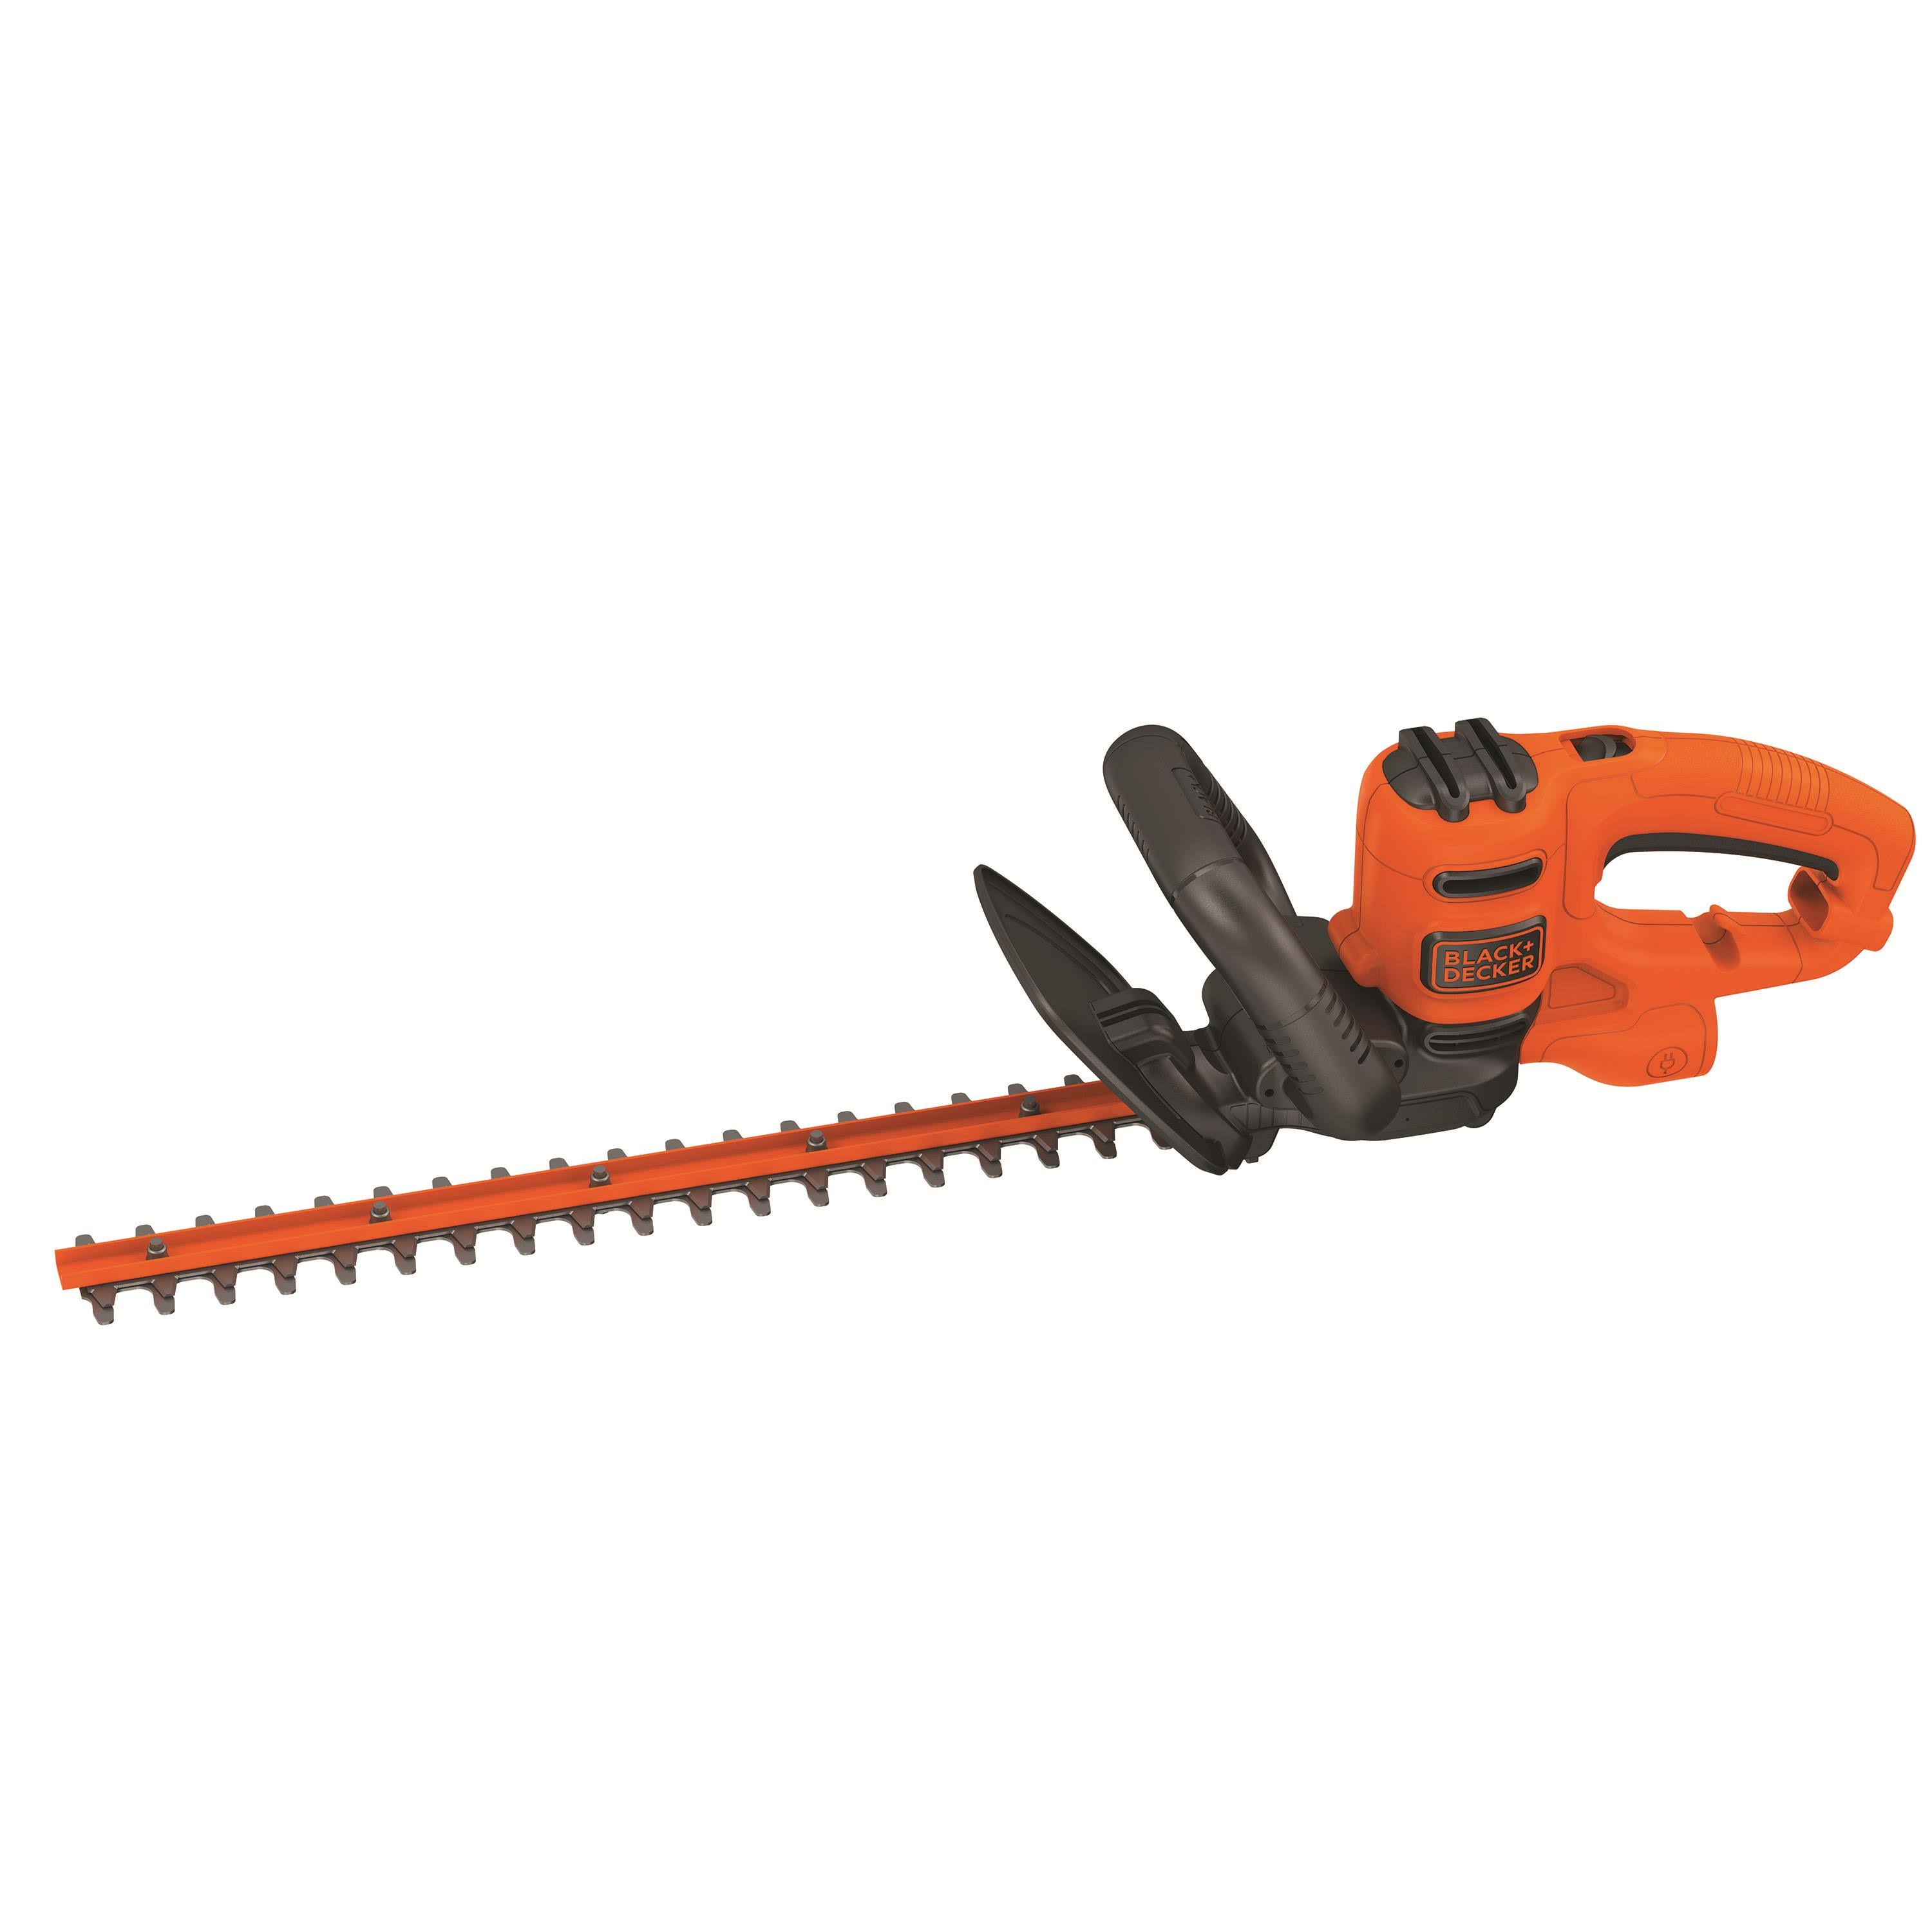 Black and Decker Electric Hedge Trimmer - 18""